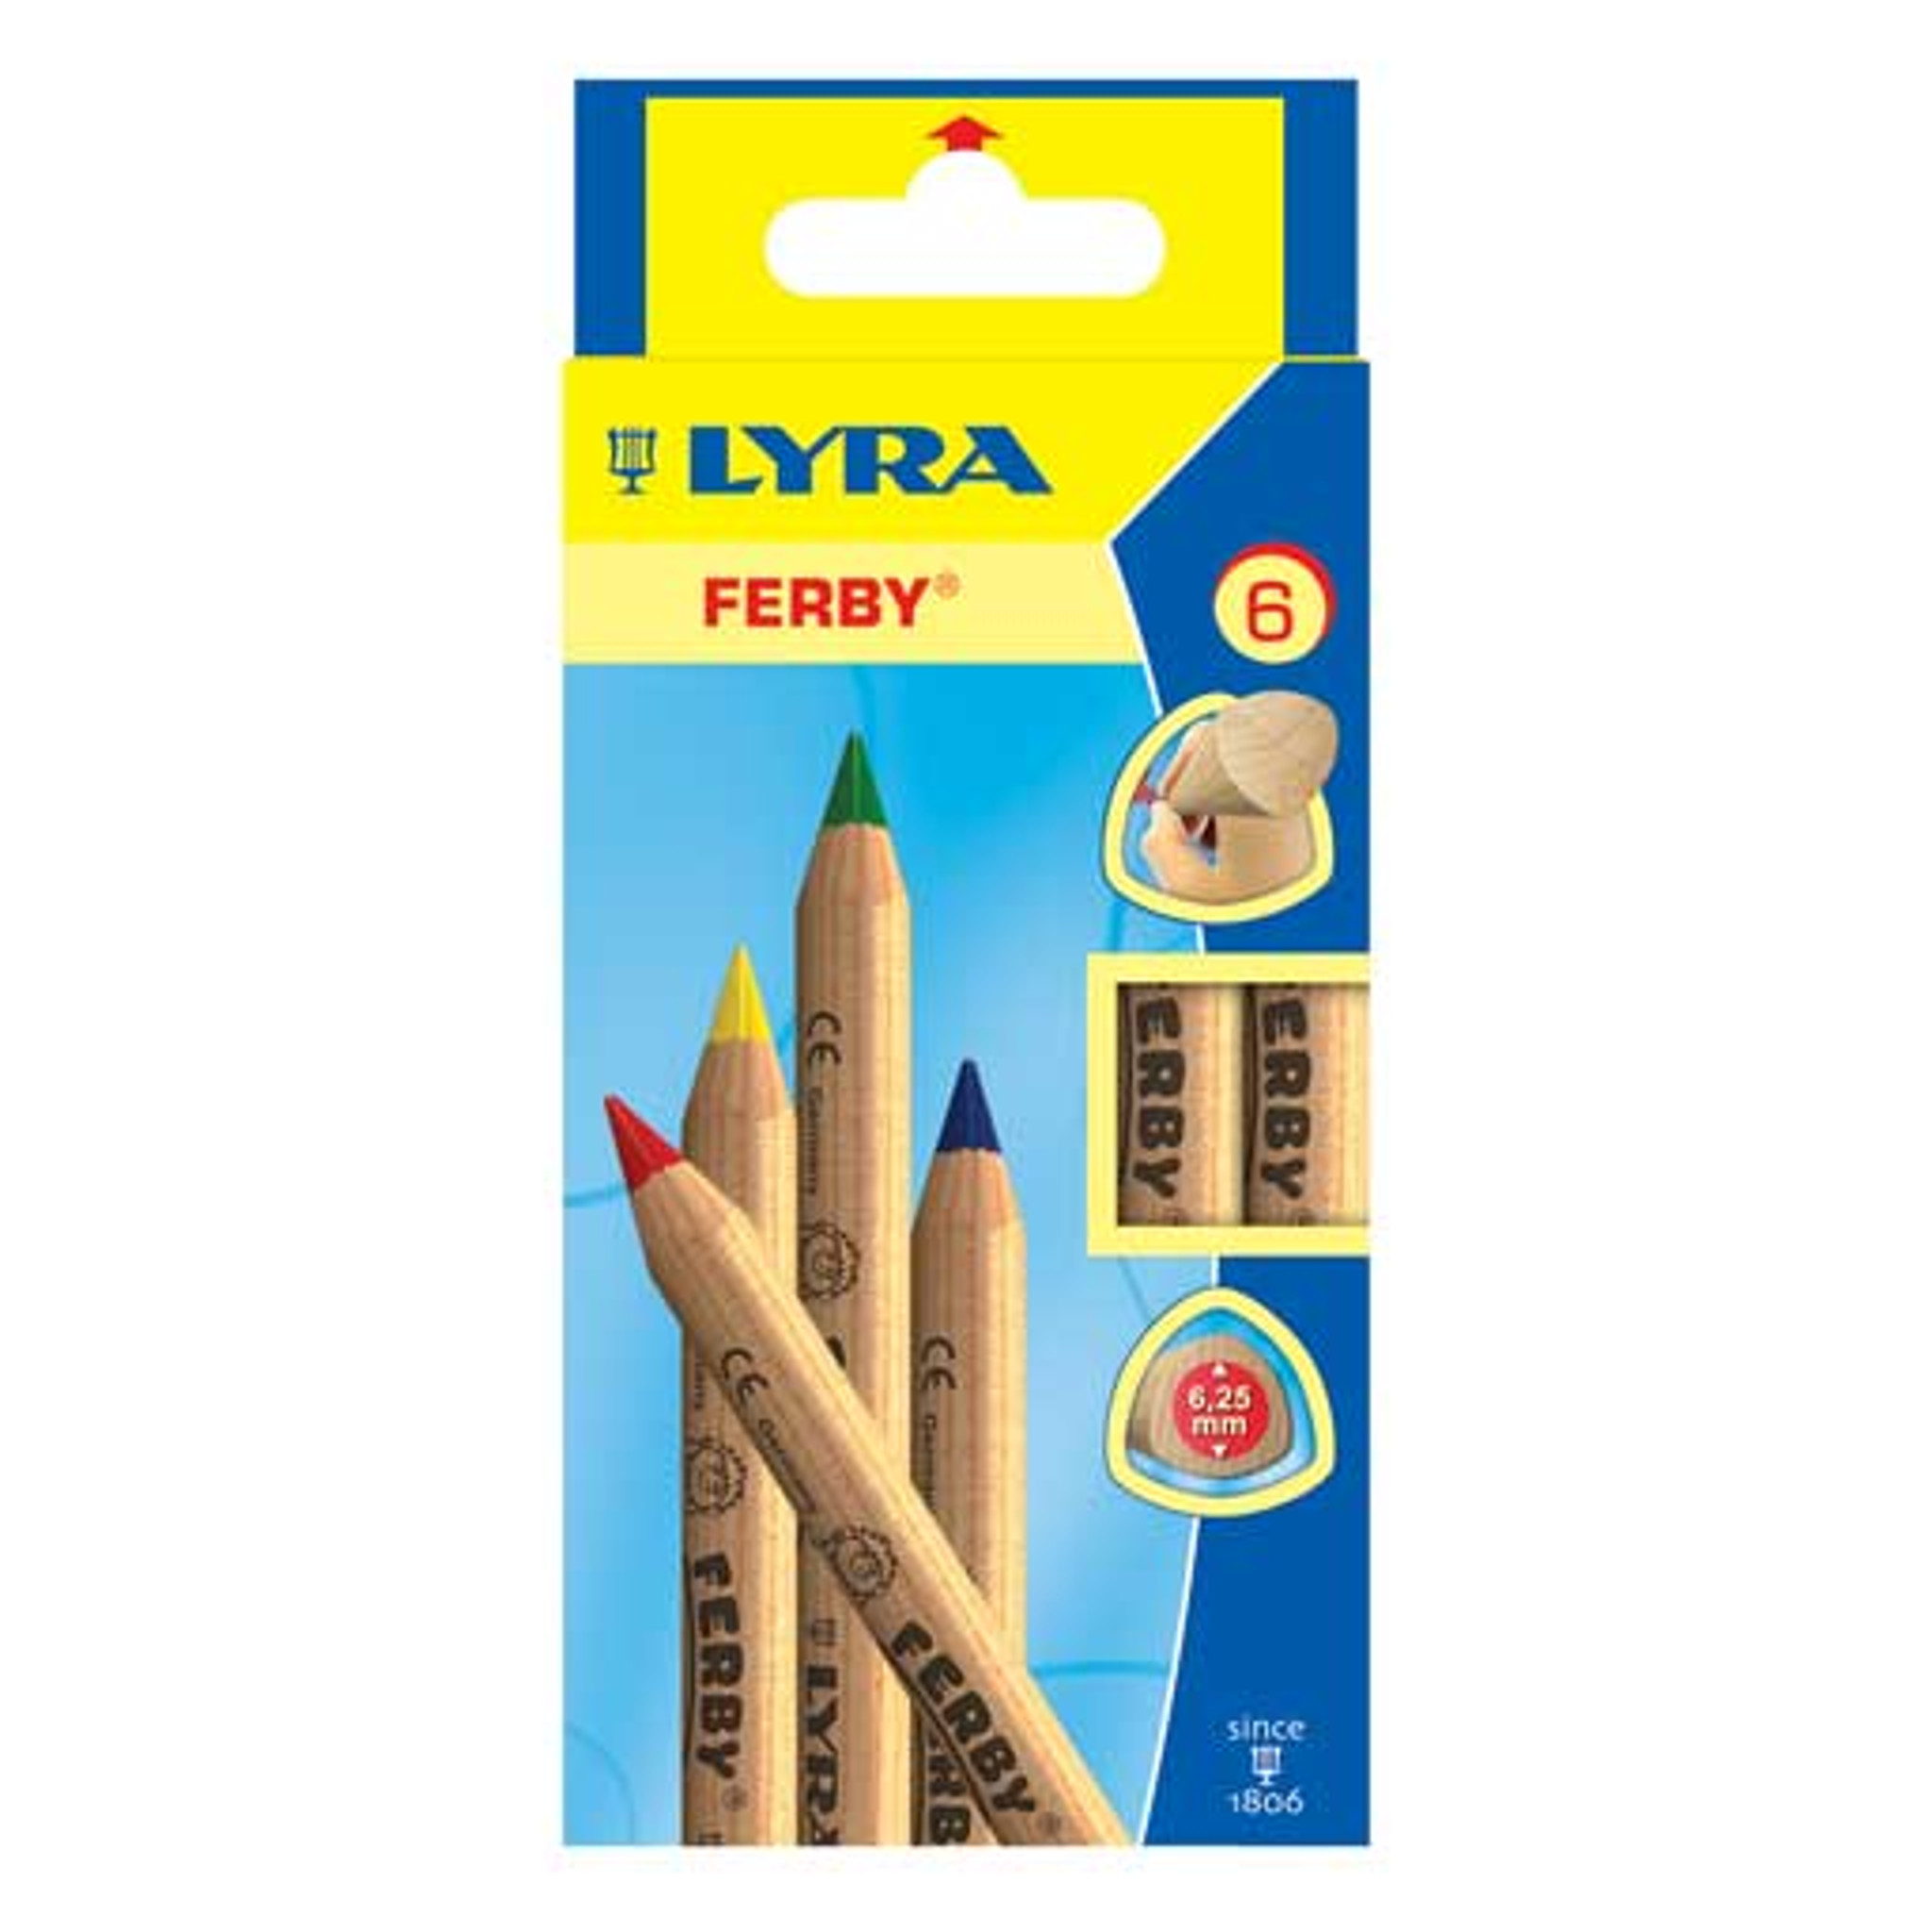 6.25mm Lead Core S Lacquered LYRA Super Ferby Giant Triangular Colored Pencil